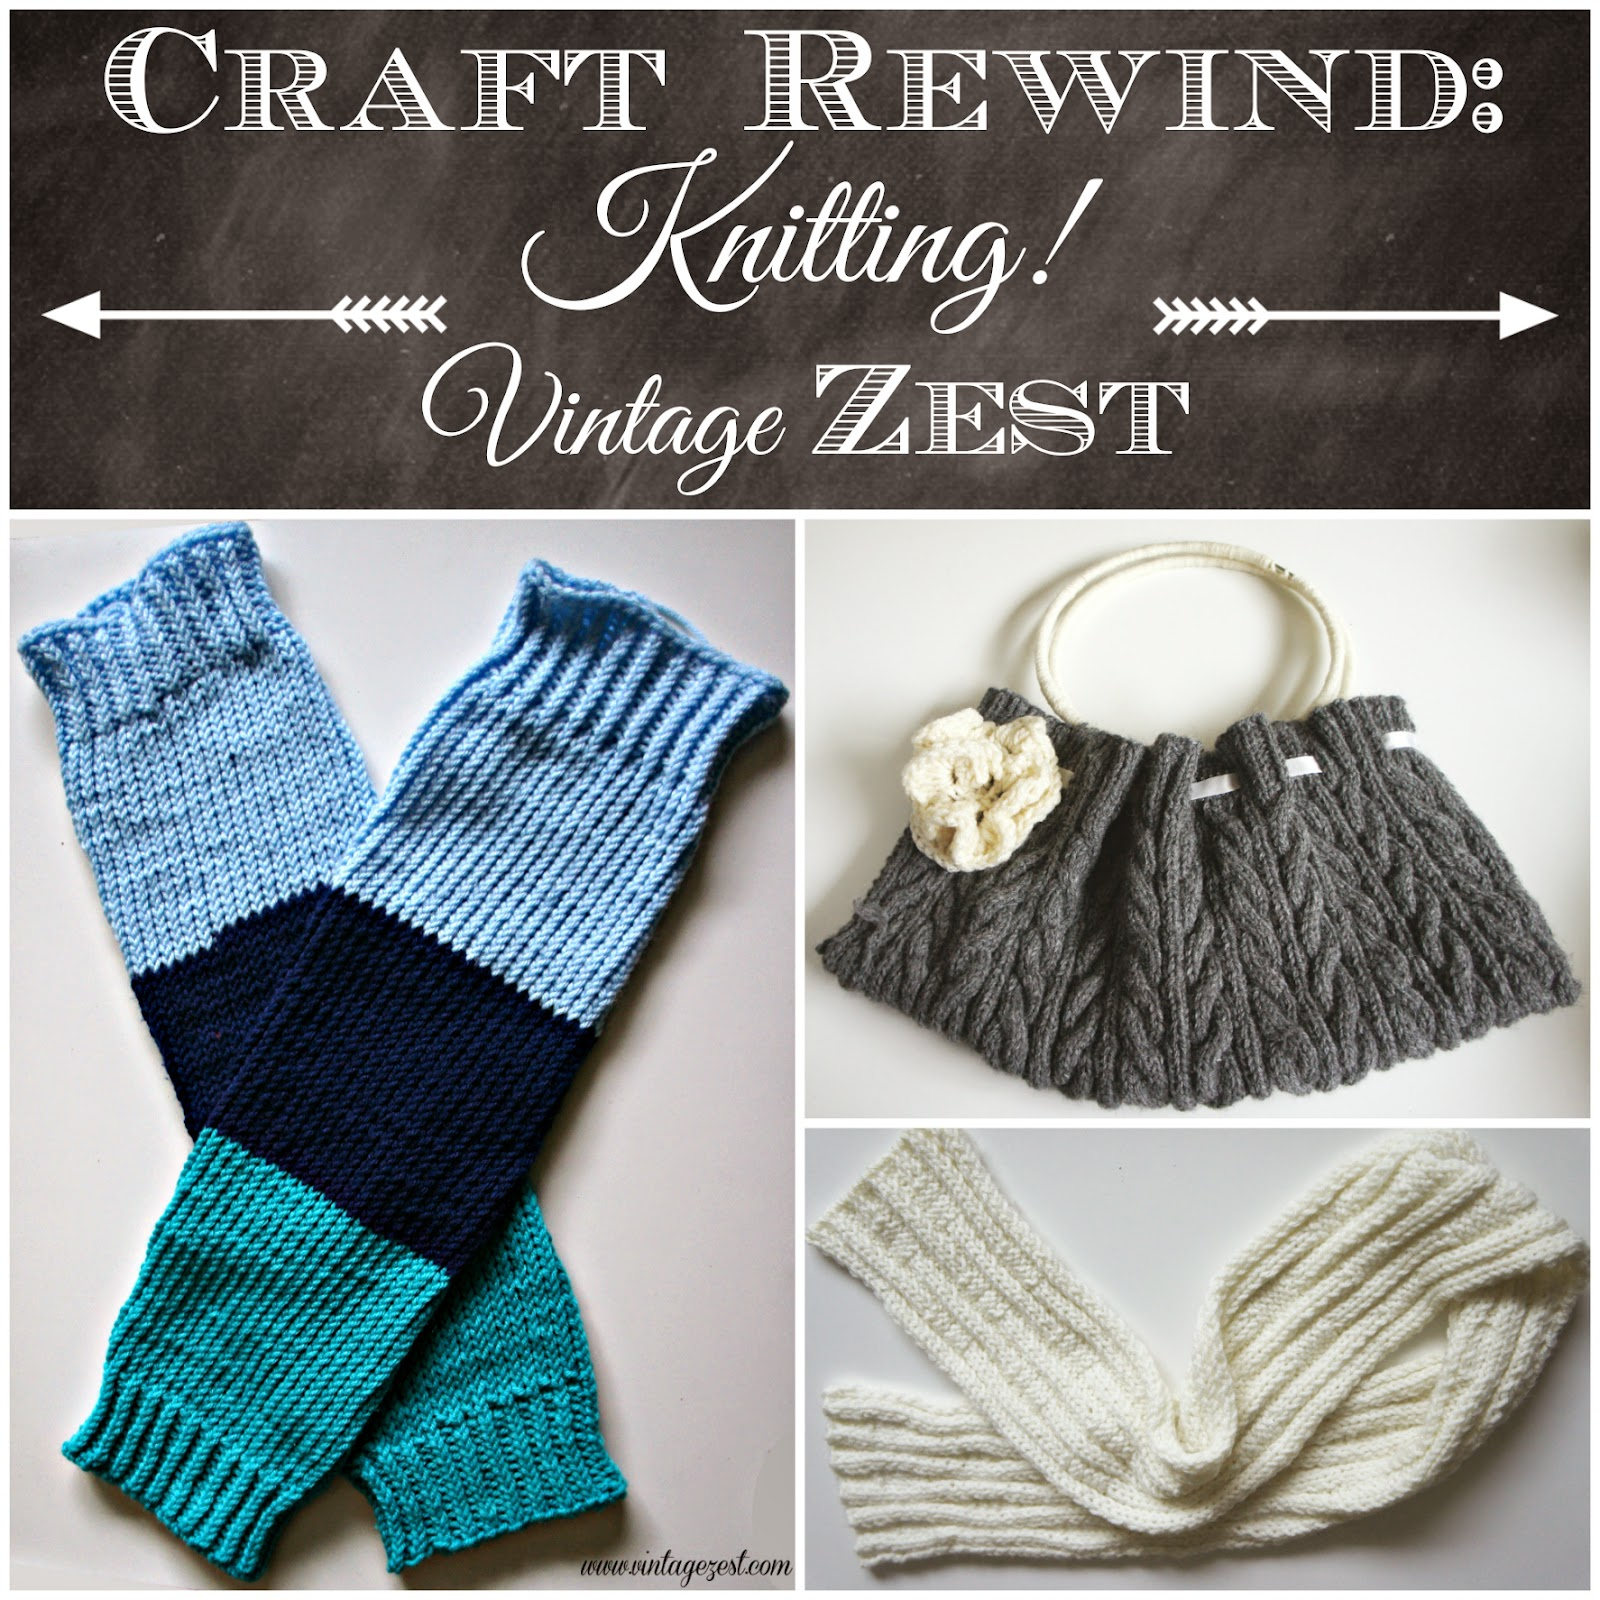 Craft Rewind: Knitting! on Diane's Vintage Zest!